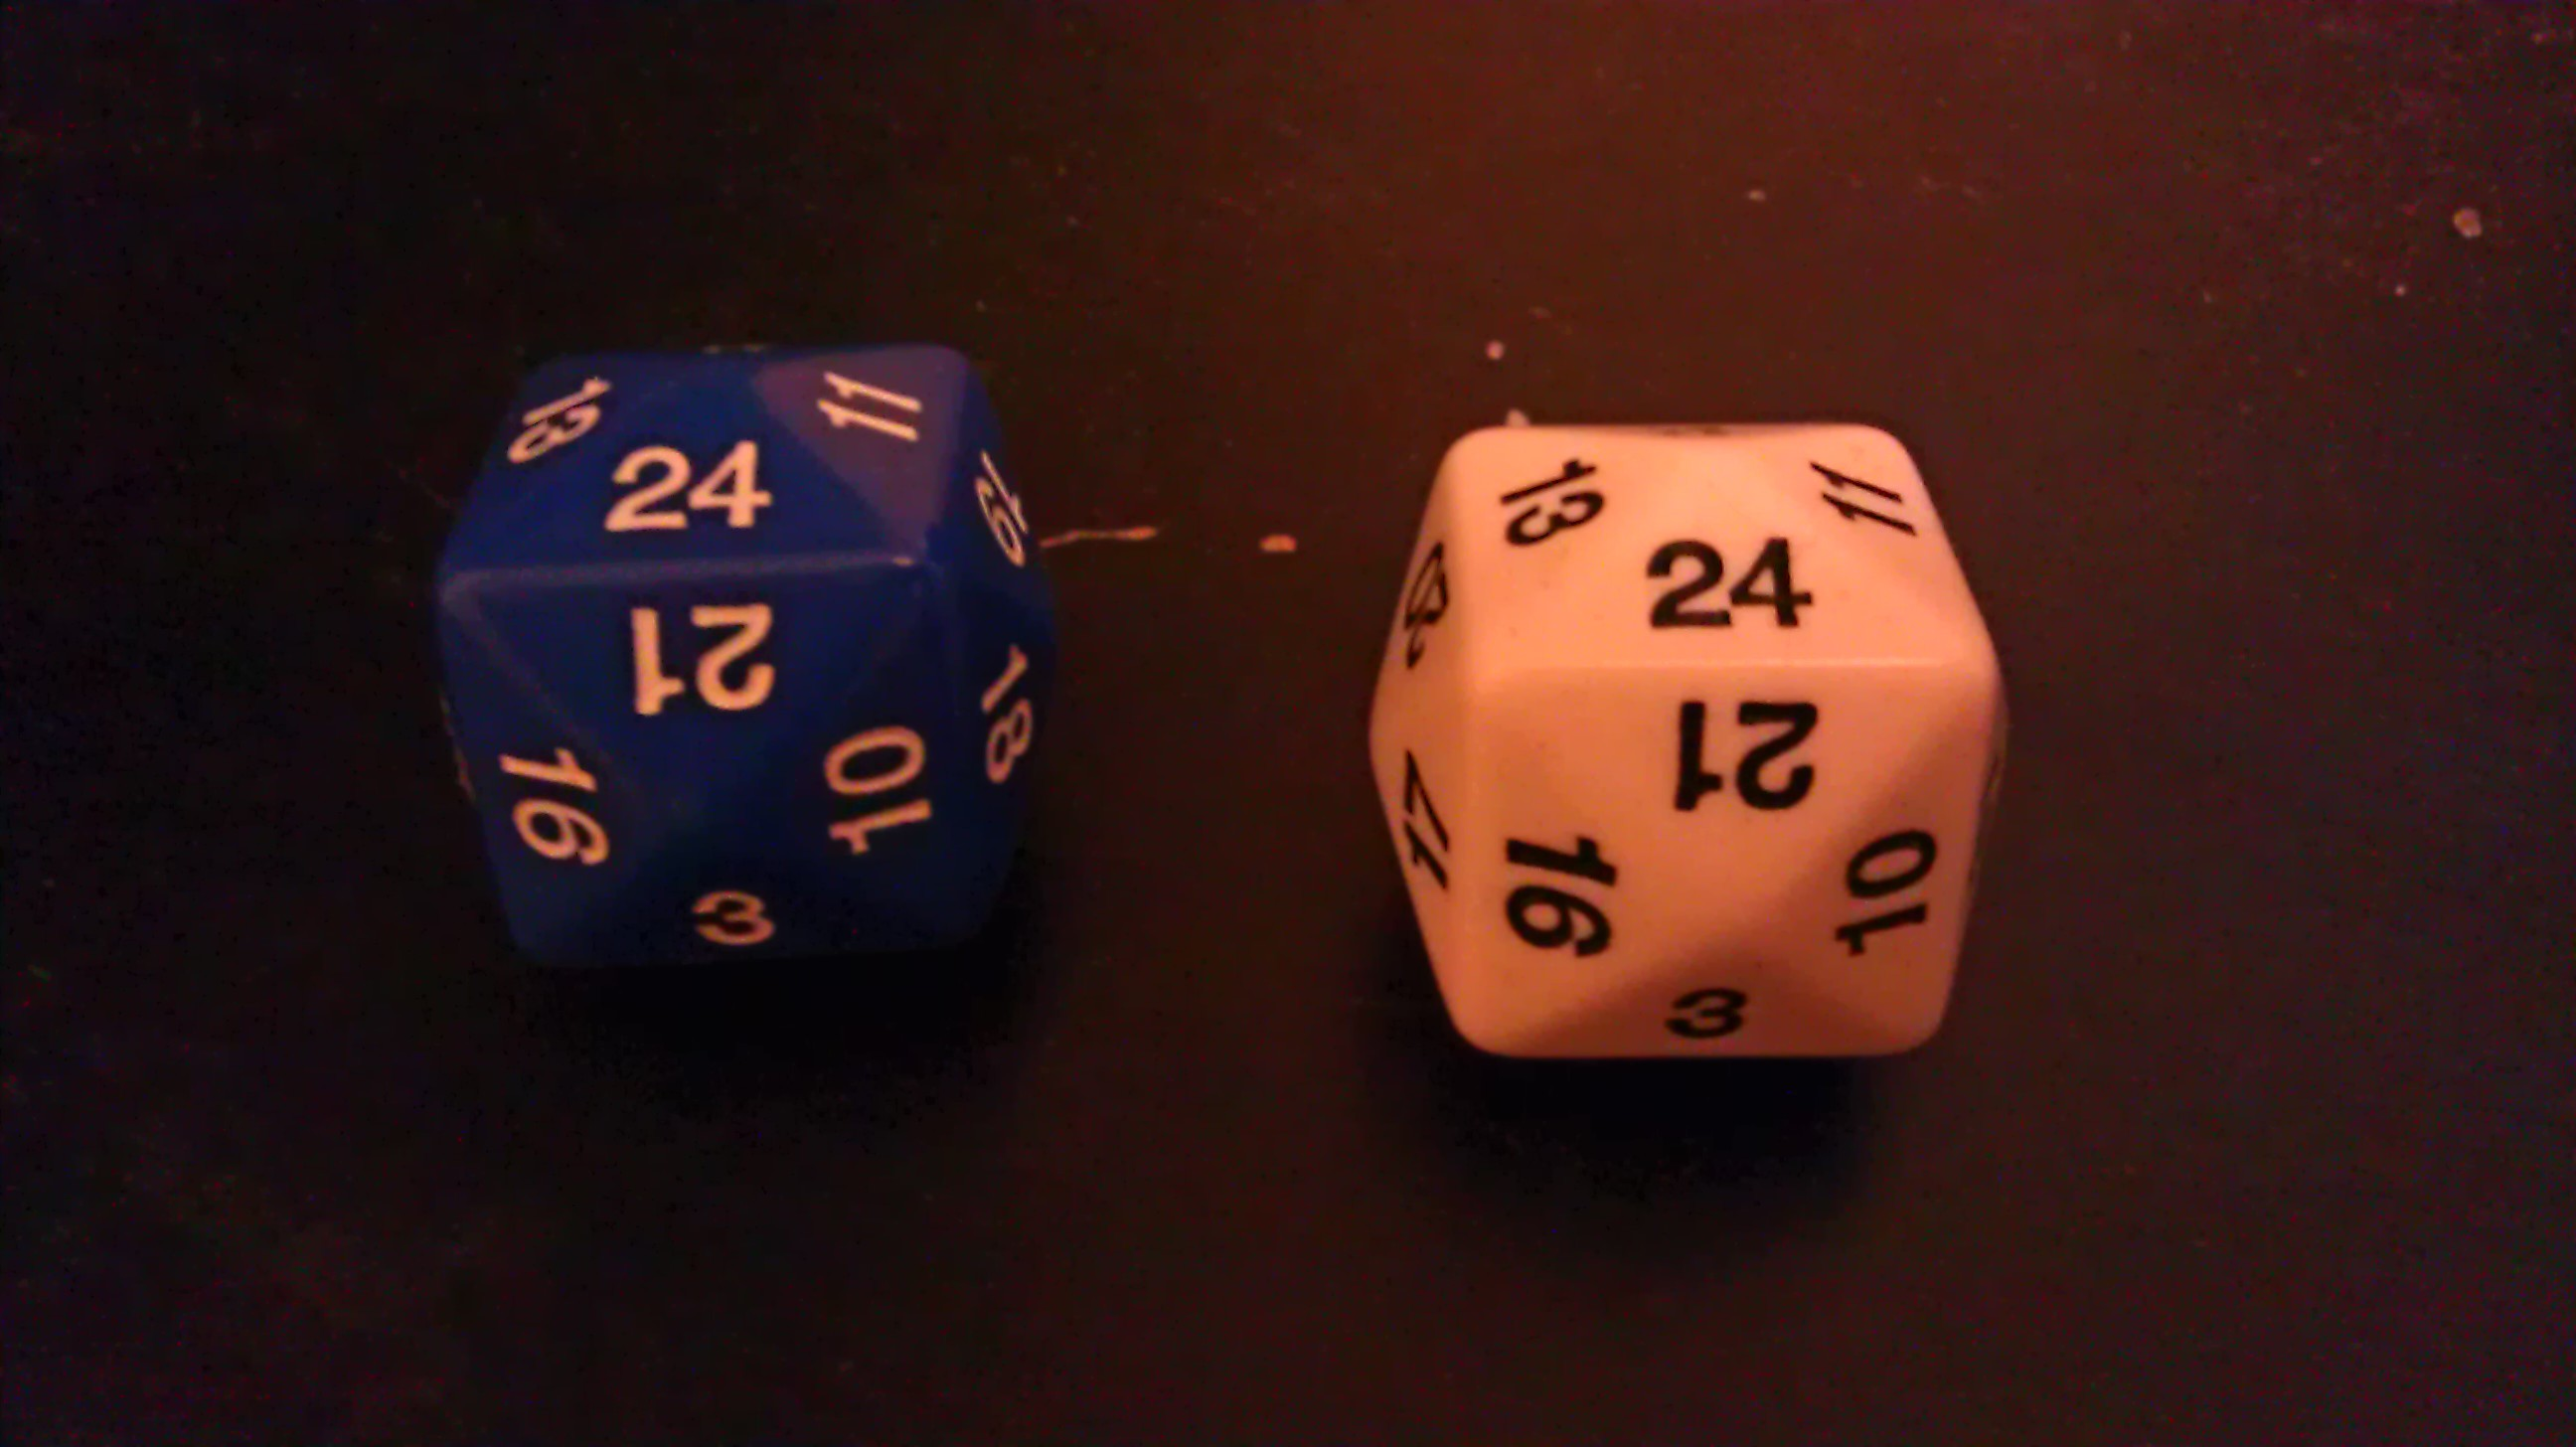 I found some 24 sided dice. What games should be played with these?